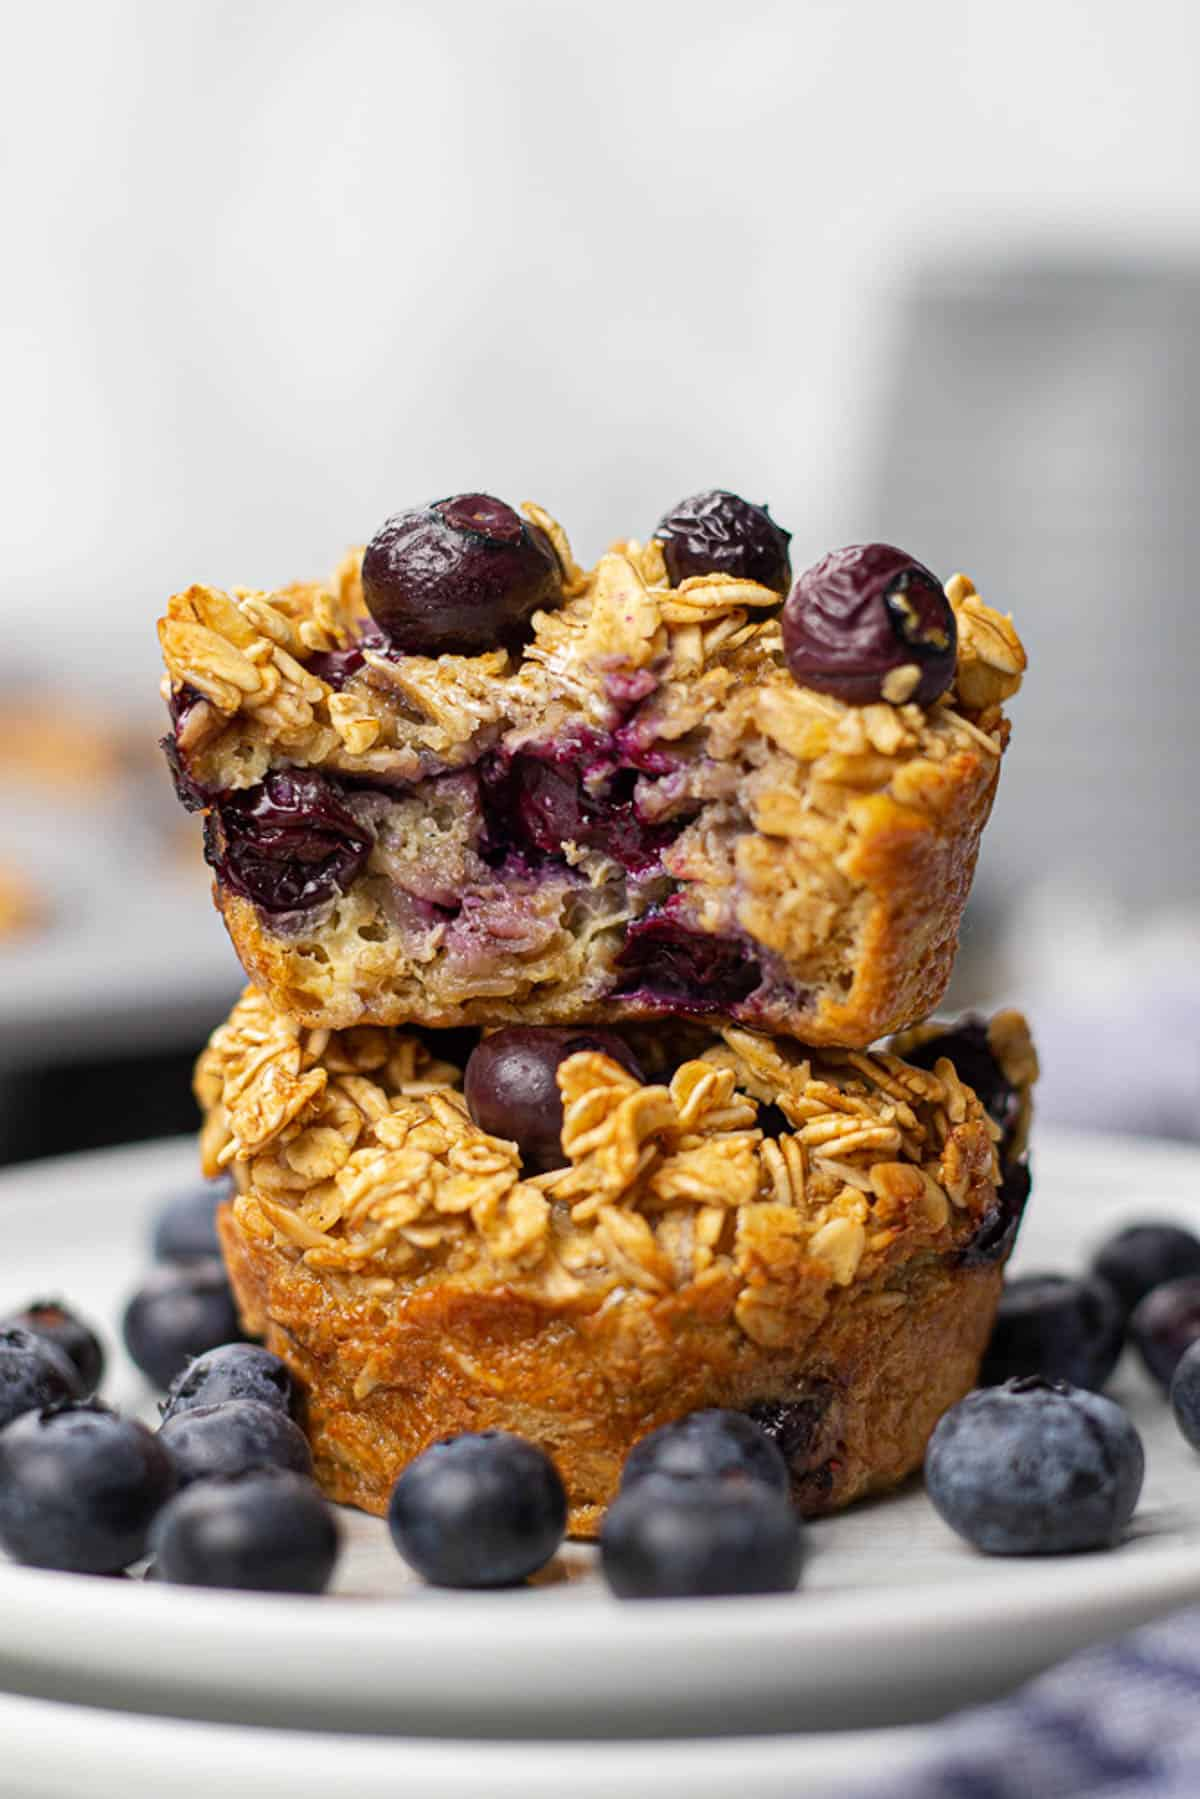 Oatmeal cups with blueberries on a plate.